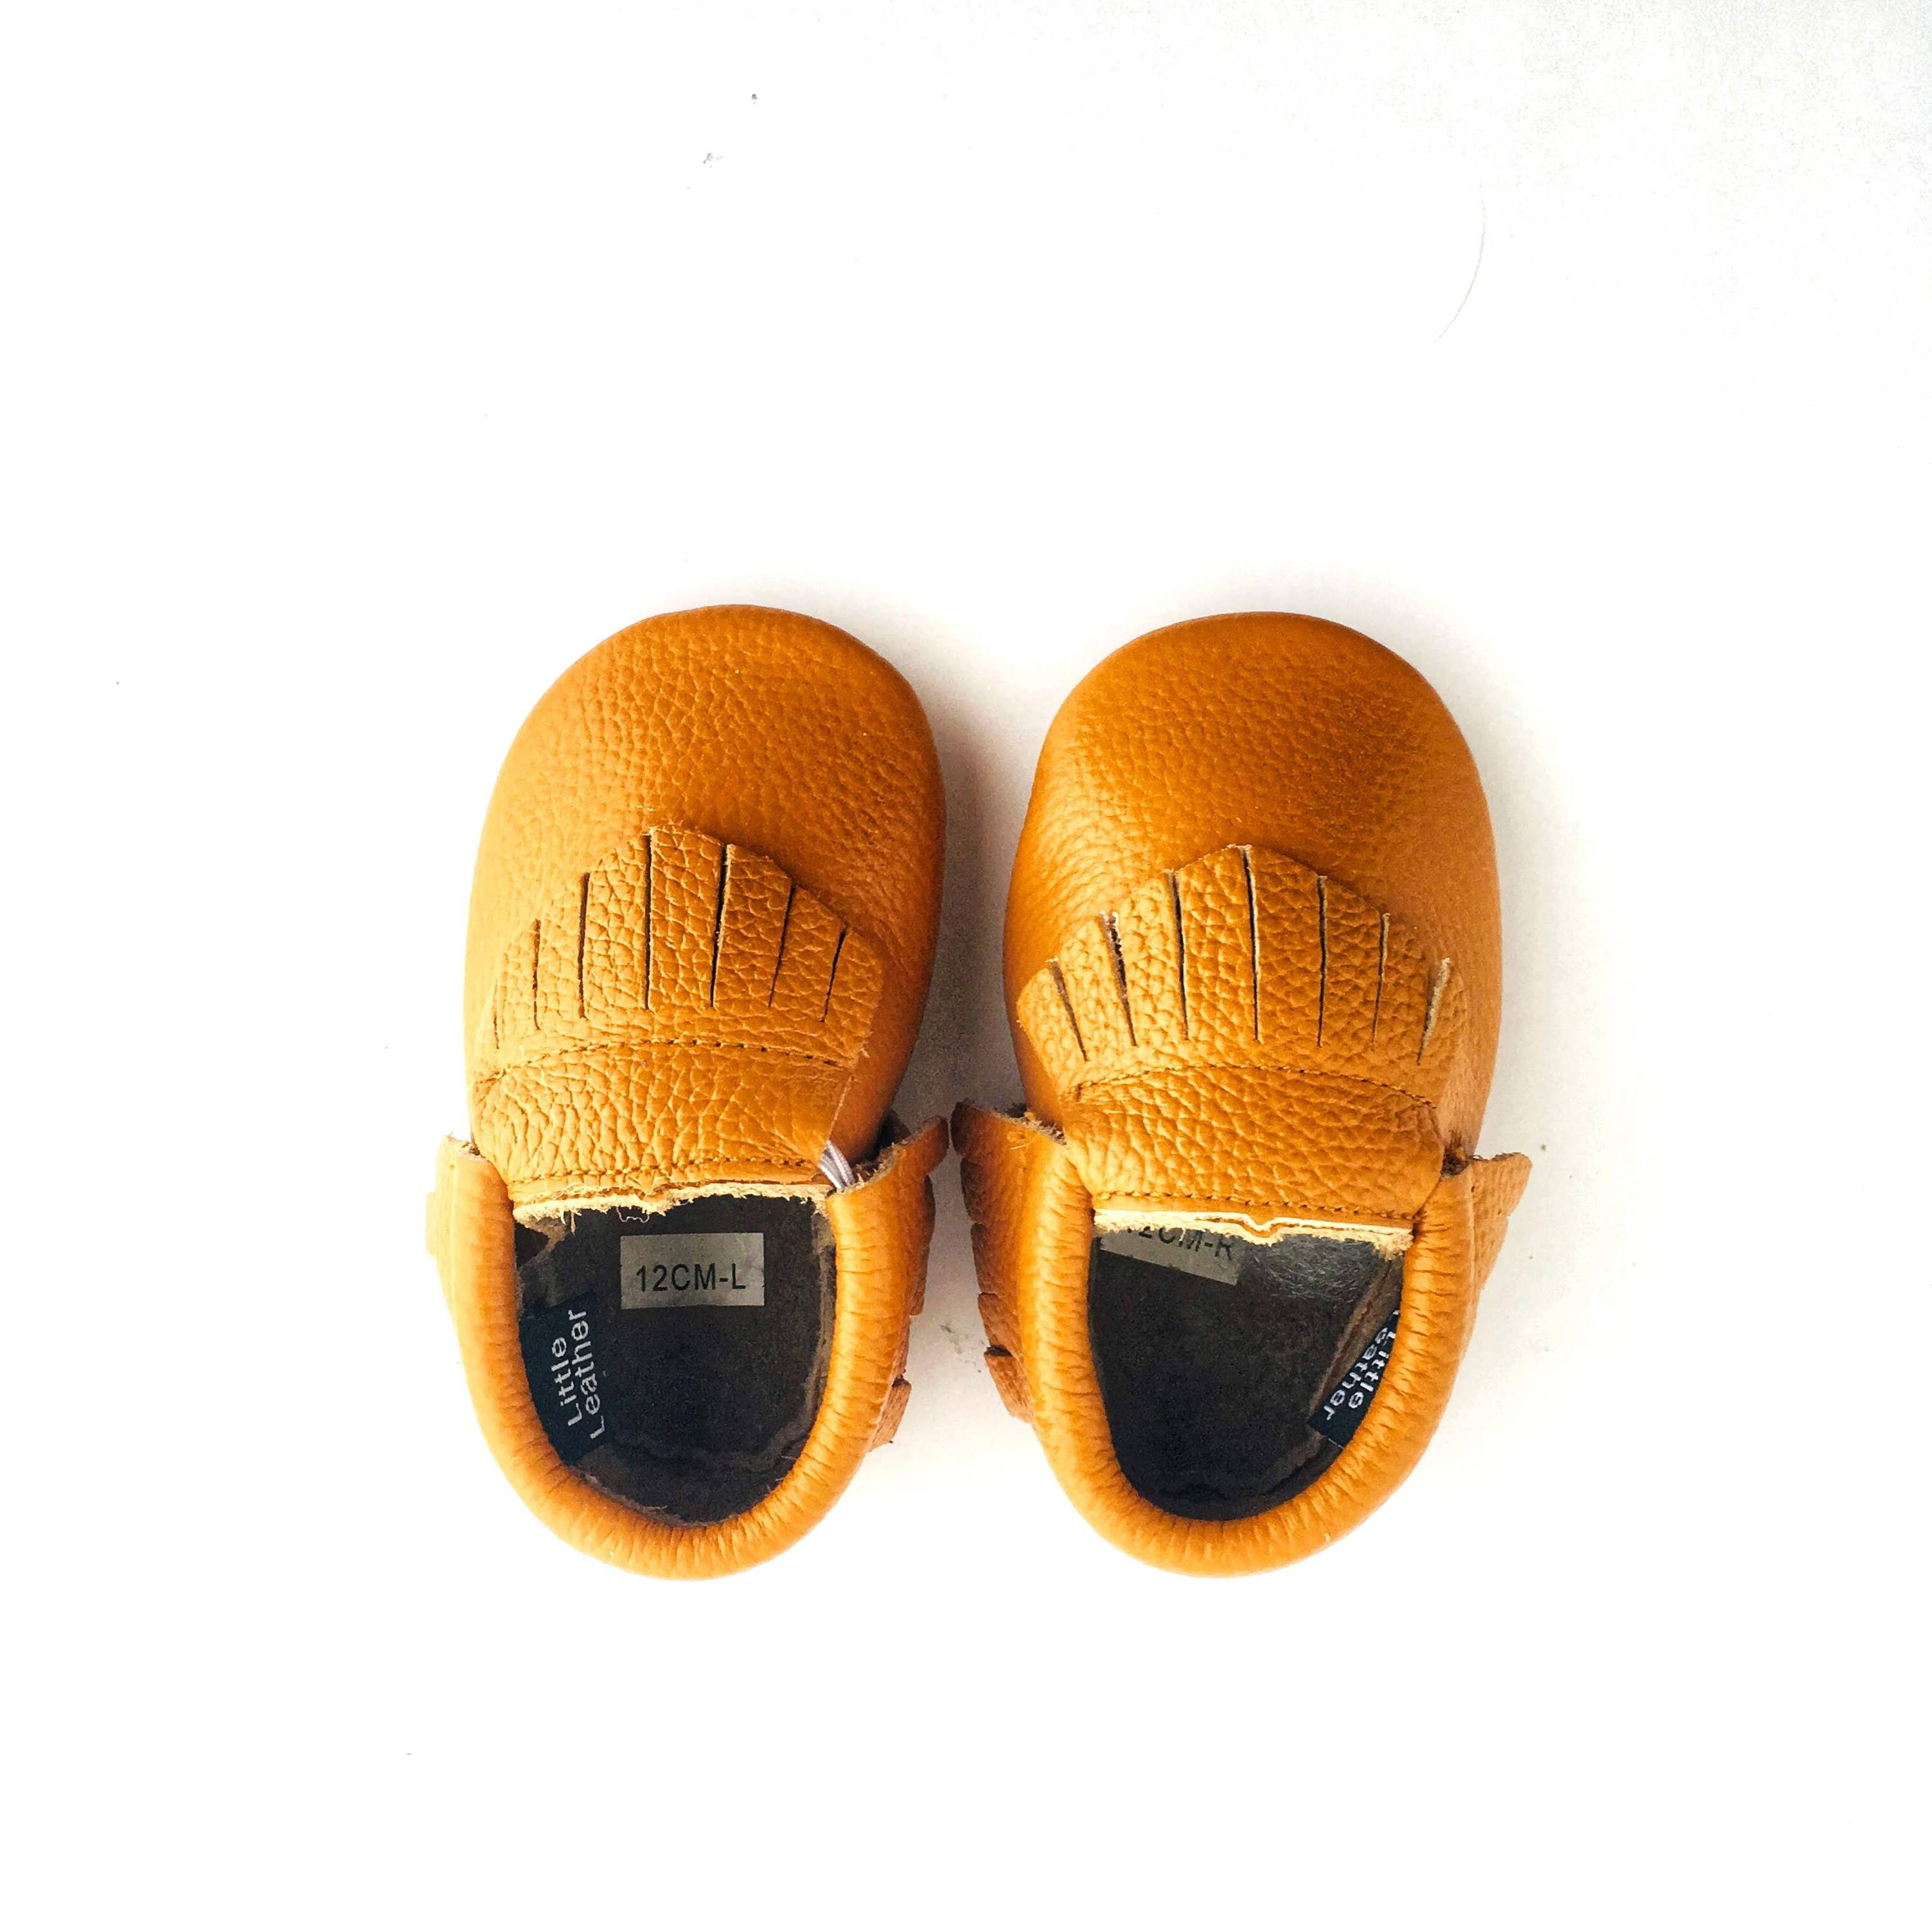 Caramel colour soft sole shoes with fringe view from above